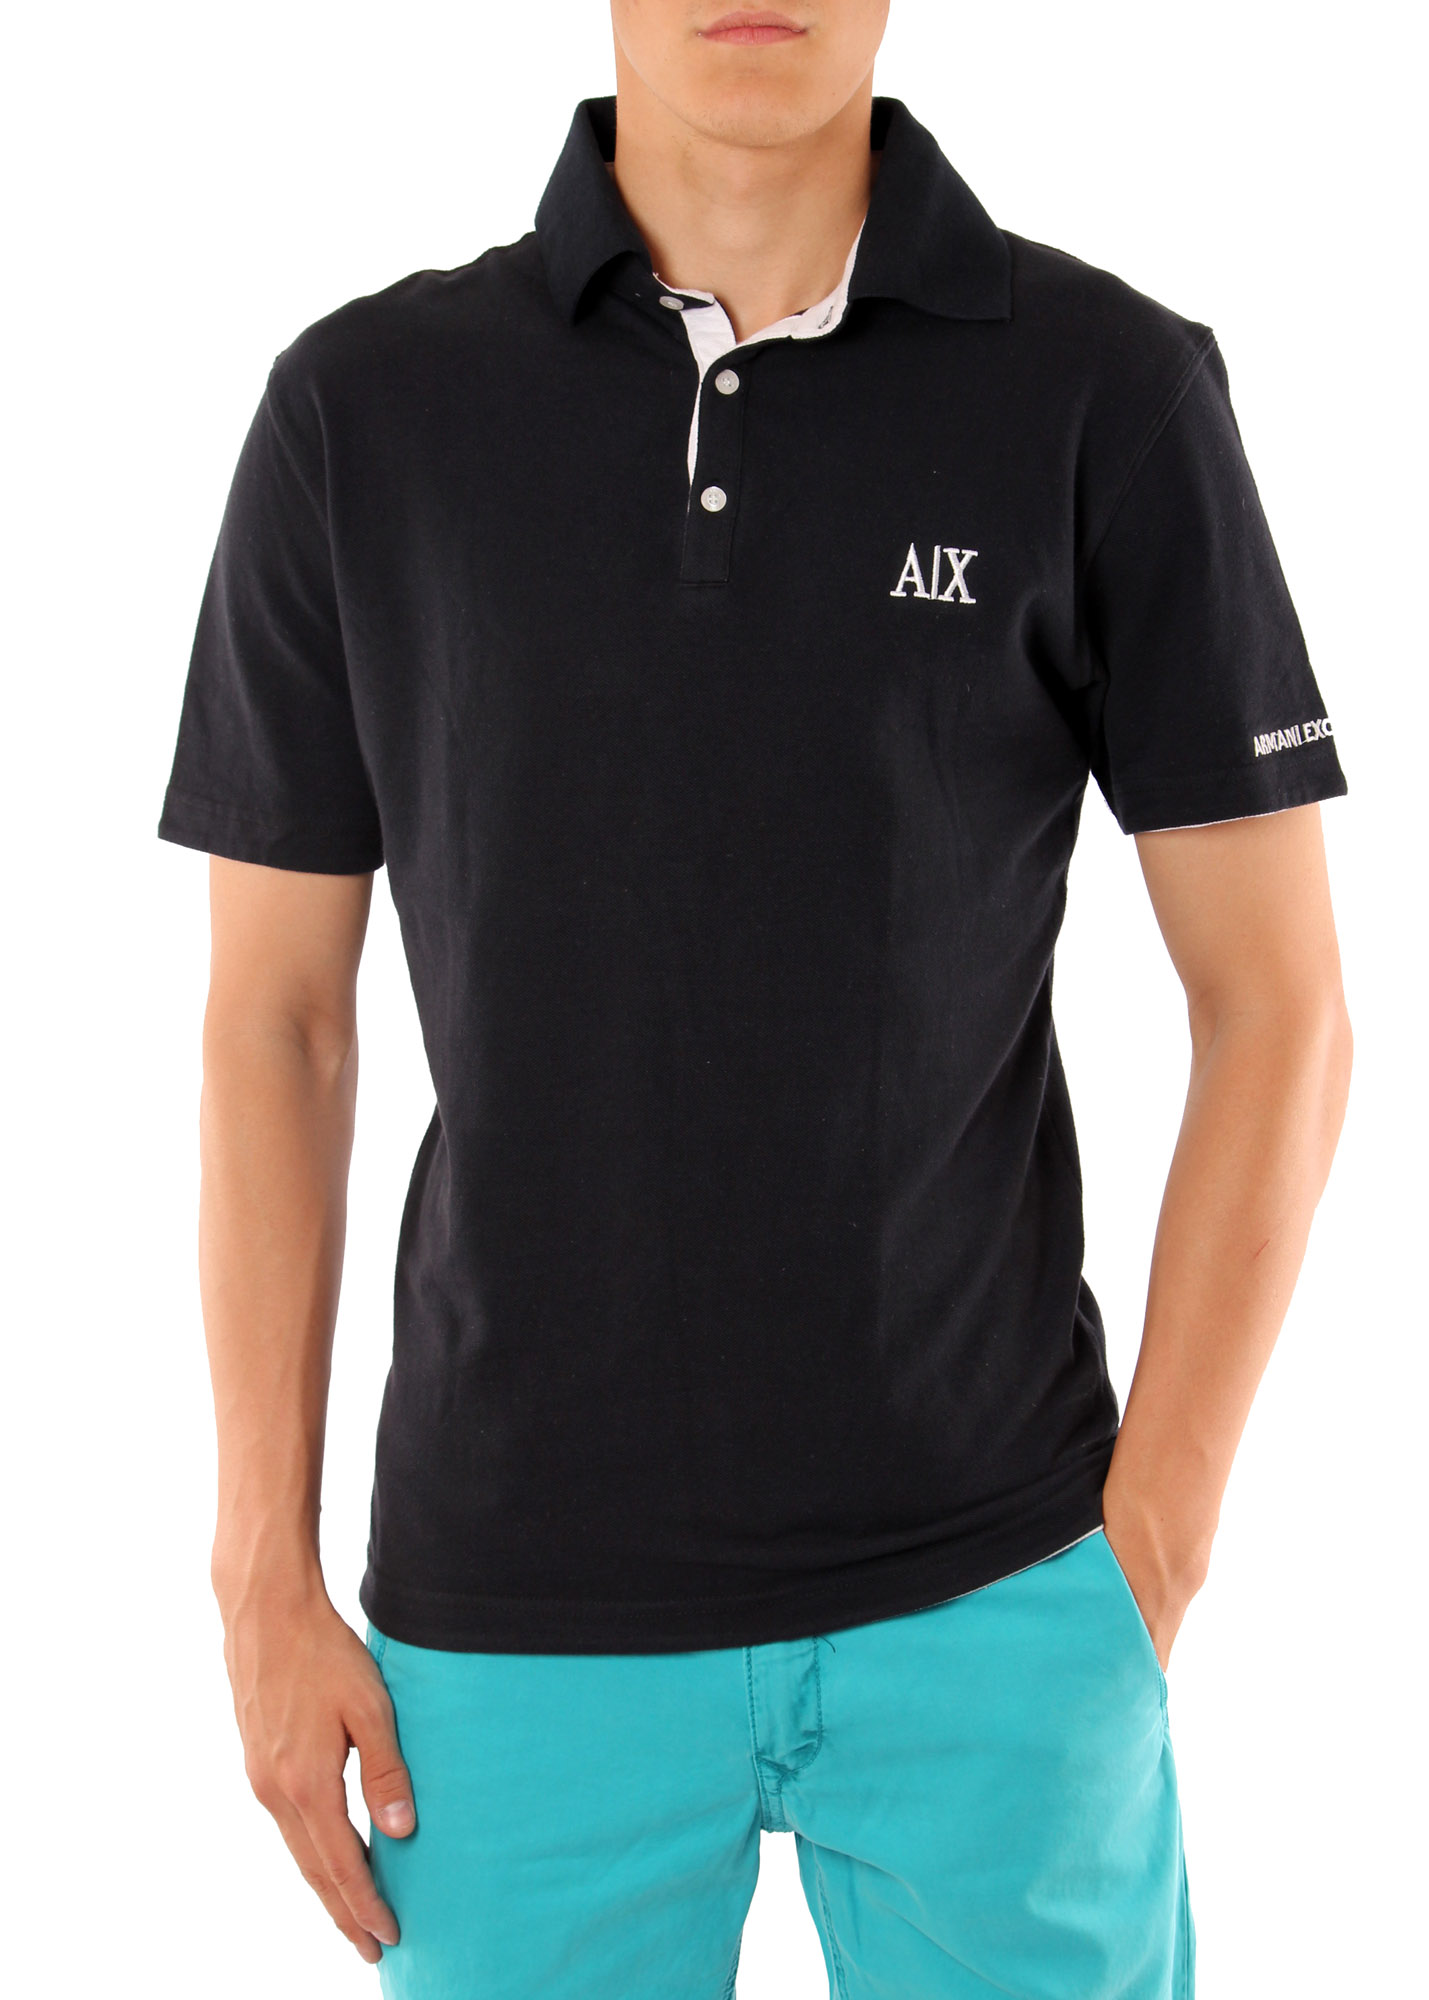 7c5f99bb Armani Exchange Polo T Shirts India